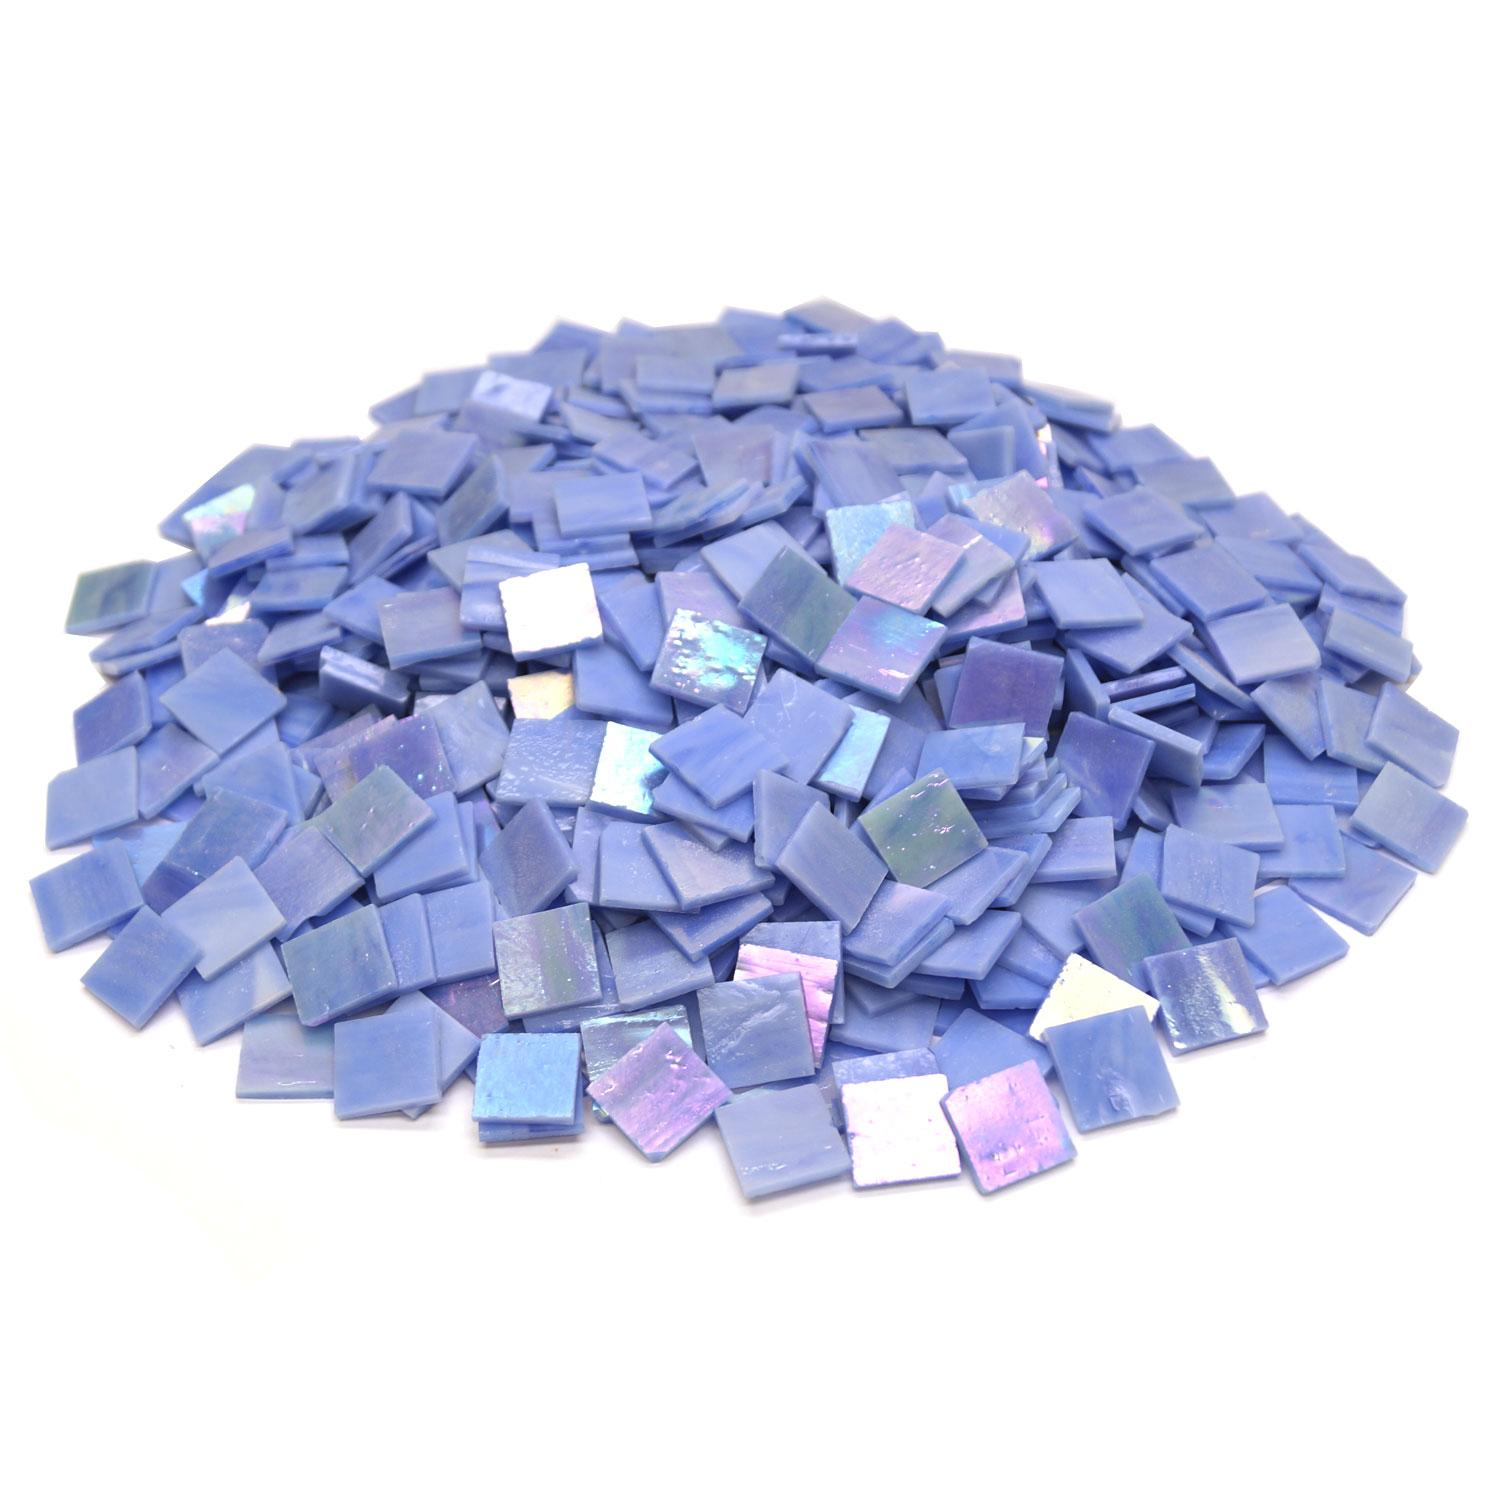 3/4 Blue Opaque Iridized Stained Glass Chips - 700 Pieces